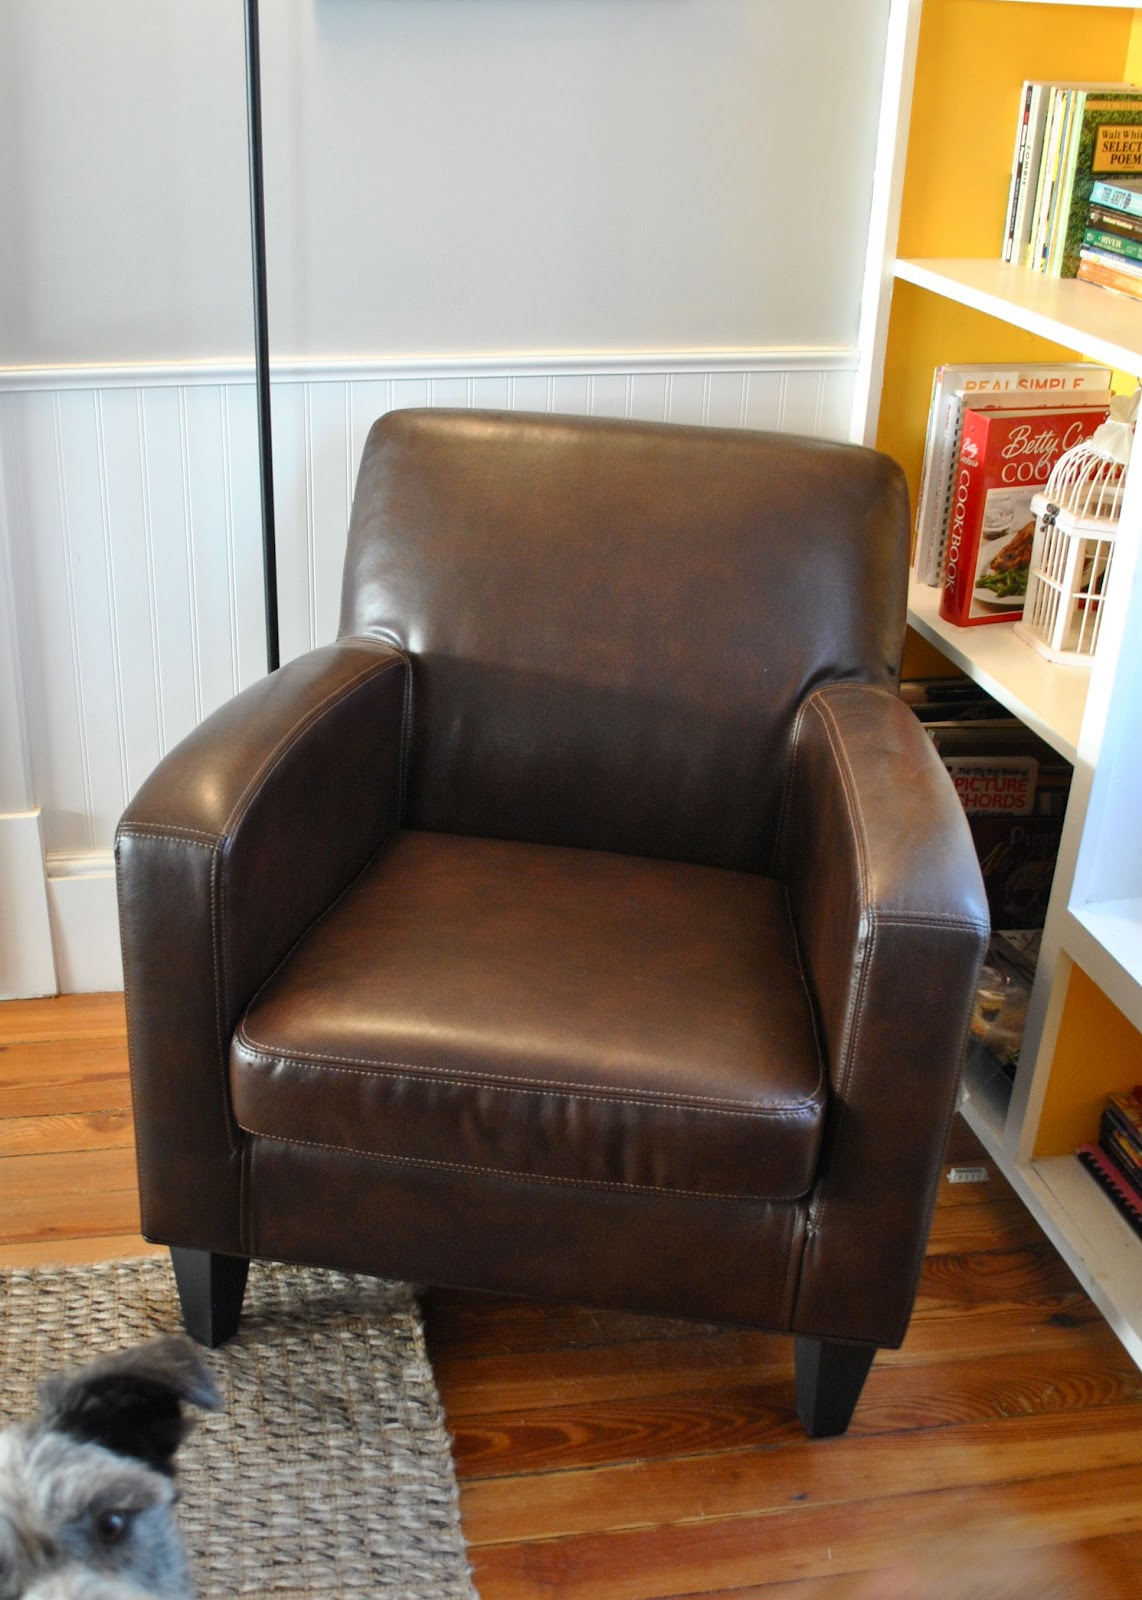 Ikea leather chair brown - So Apparently The Reason Nate Loved The Chair From World Market Was Because Of How The Seat Cushion Wasn T The Leather So His Legs Wouldn T Stick To It If